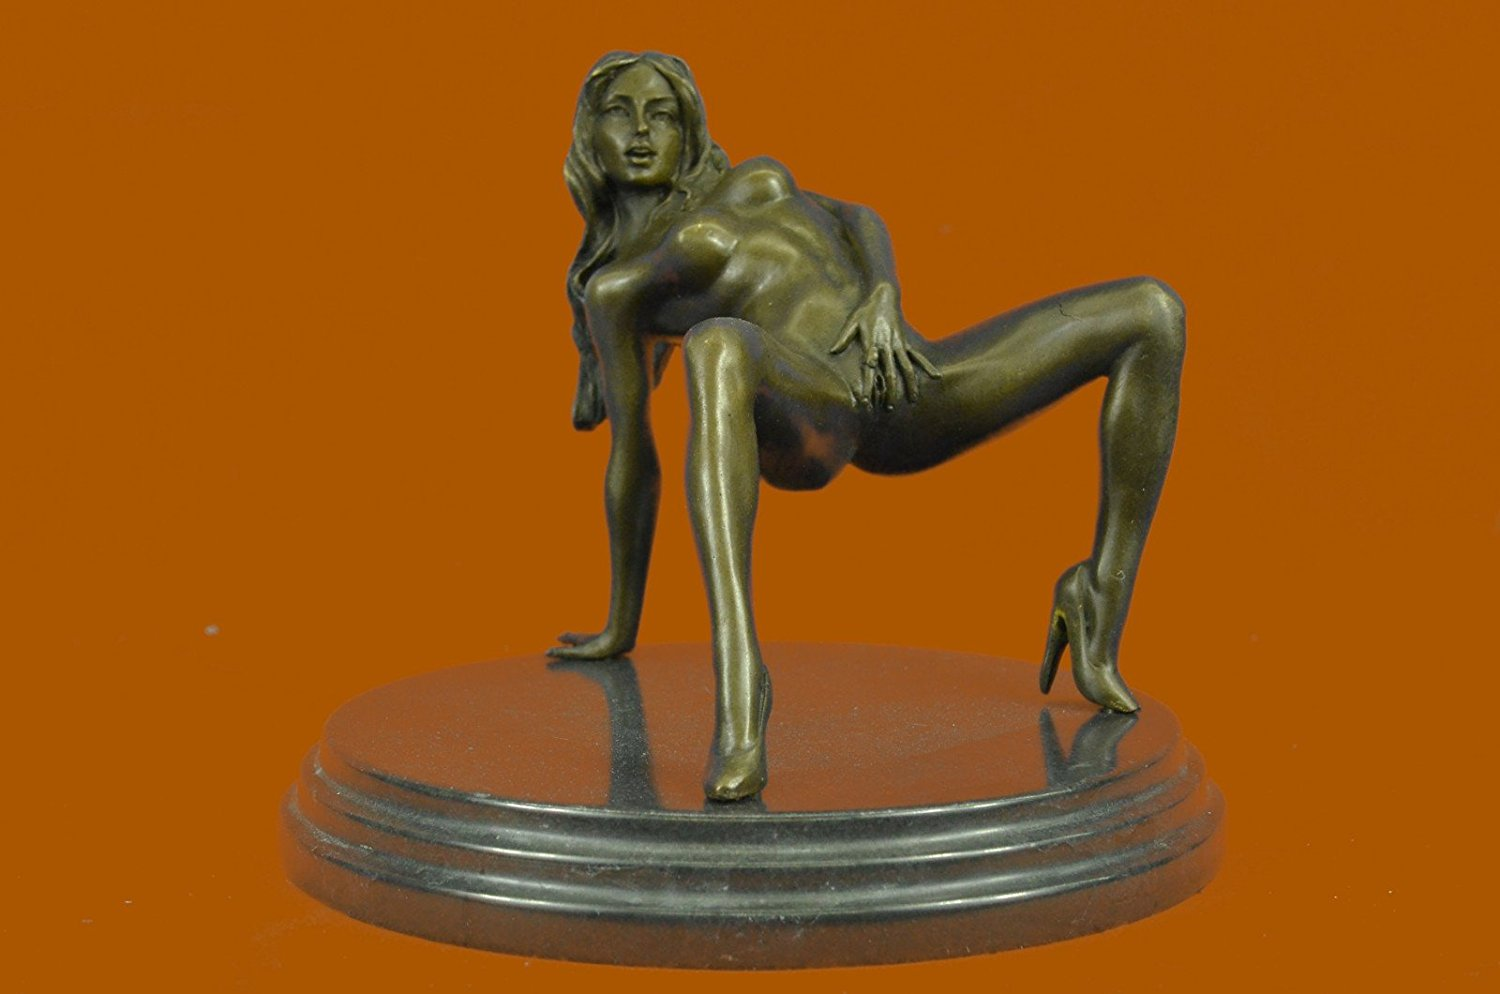 Pin on art deco reproductions goodbad you be the judge